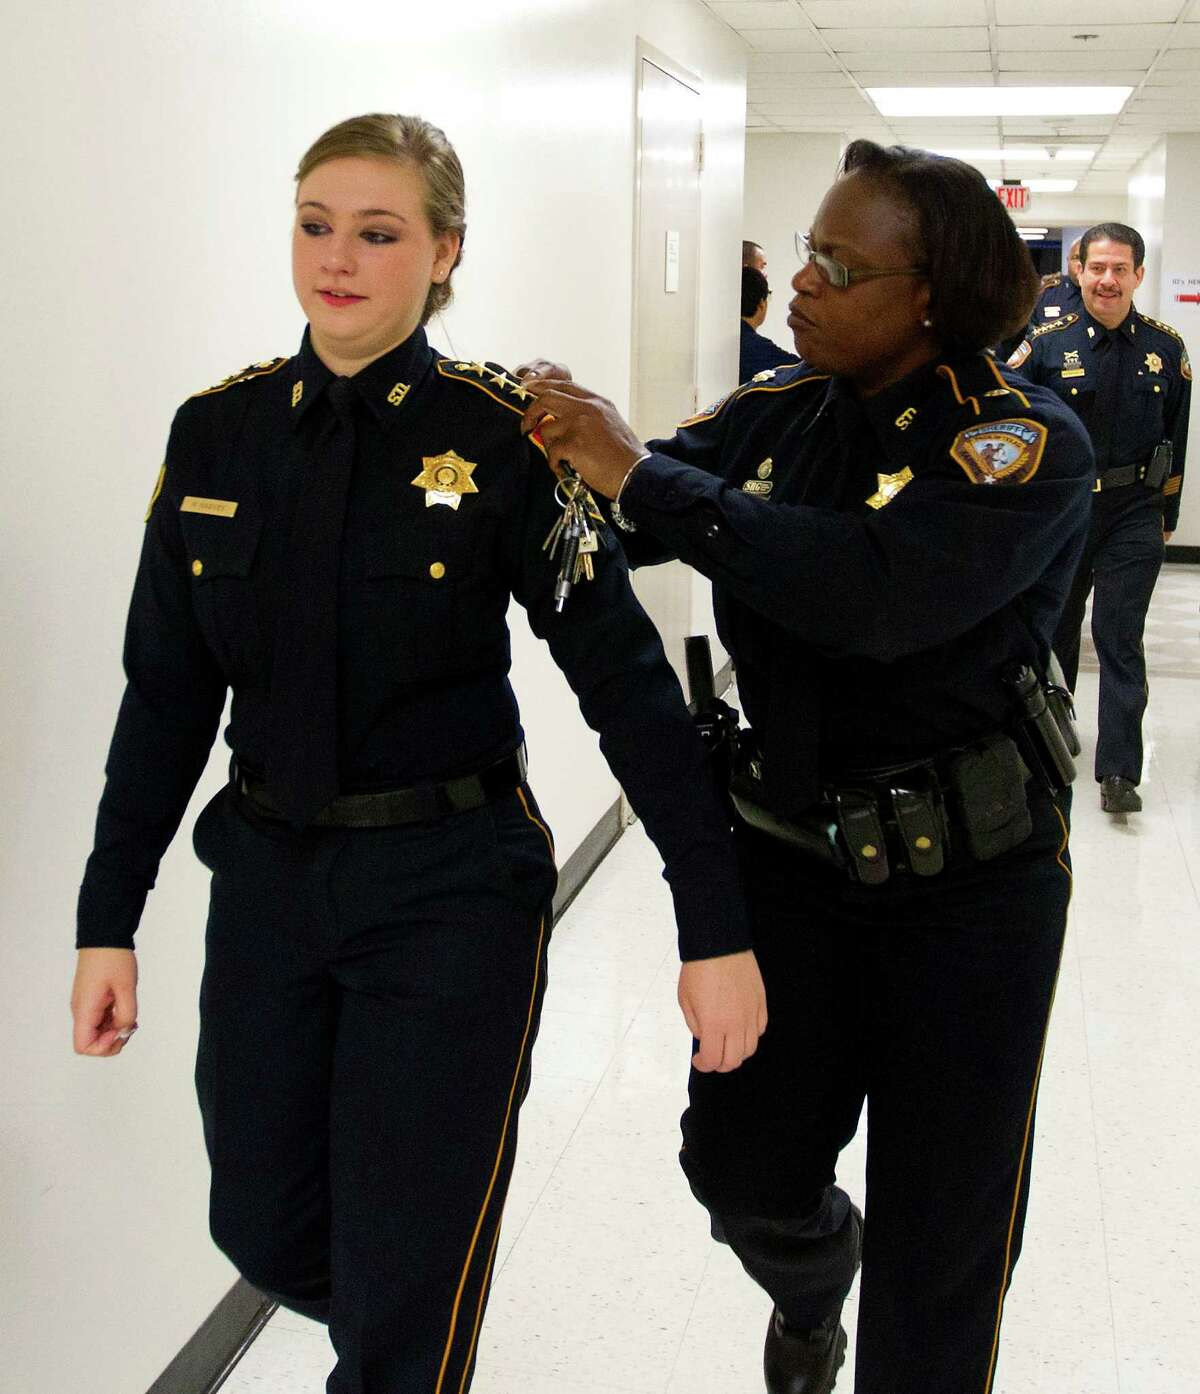 Harris County Sheriff's Department Master Peace Officer, S. C. Jones, adjusts the stars of Harris County Sheriff's Office Explorer, Sergeant Haley Rose Harvey, as she's trailed by Sheriff Adrian Garcia in the 701 N. San Jacinto Street Jail's officer dining room, Thursday, Aug. 15, 2013, in Houston. The Concordia Lutheran High School junior took the oath to become the first annual Harris County